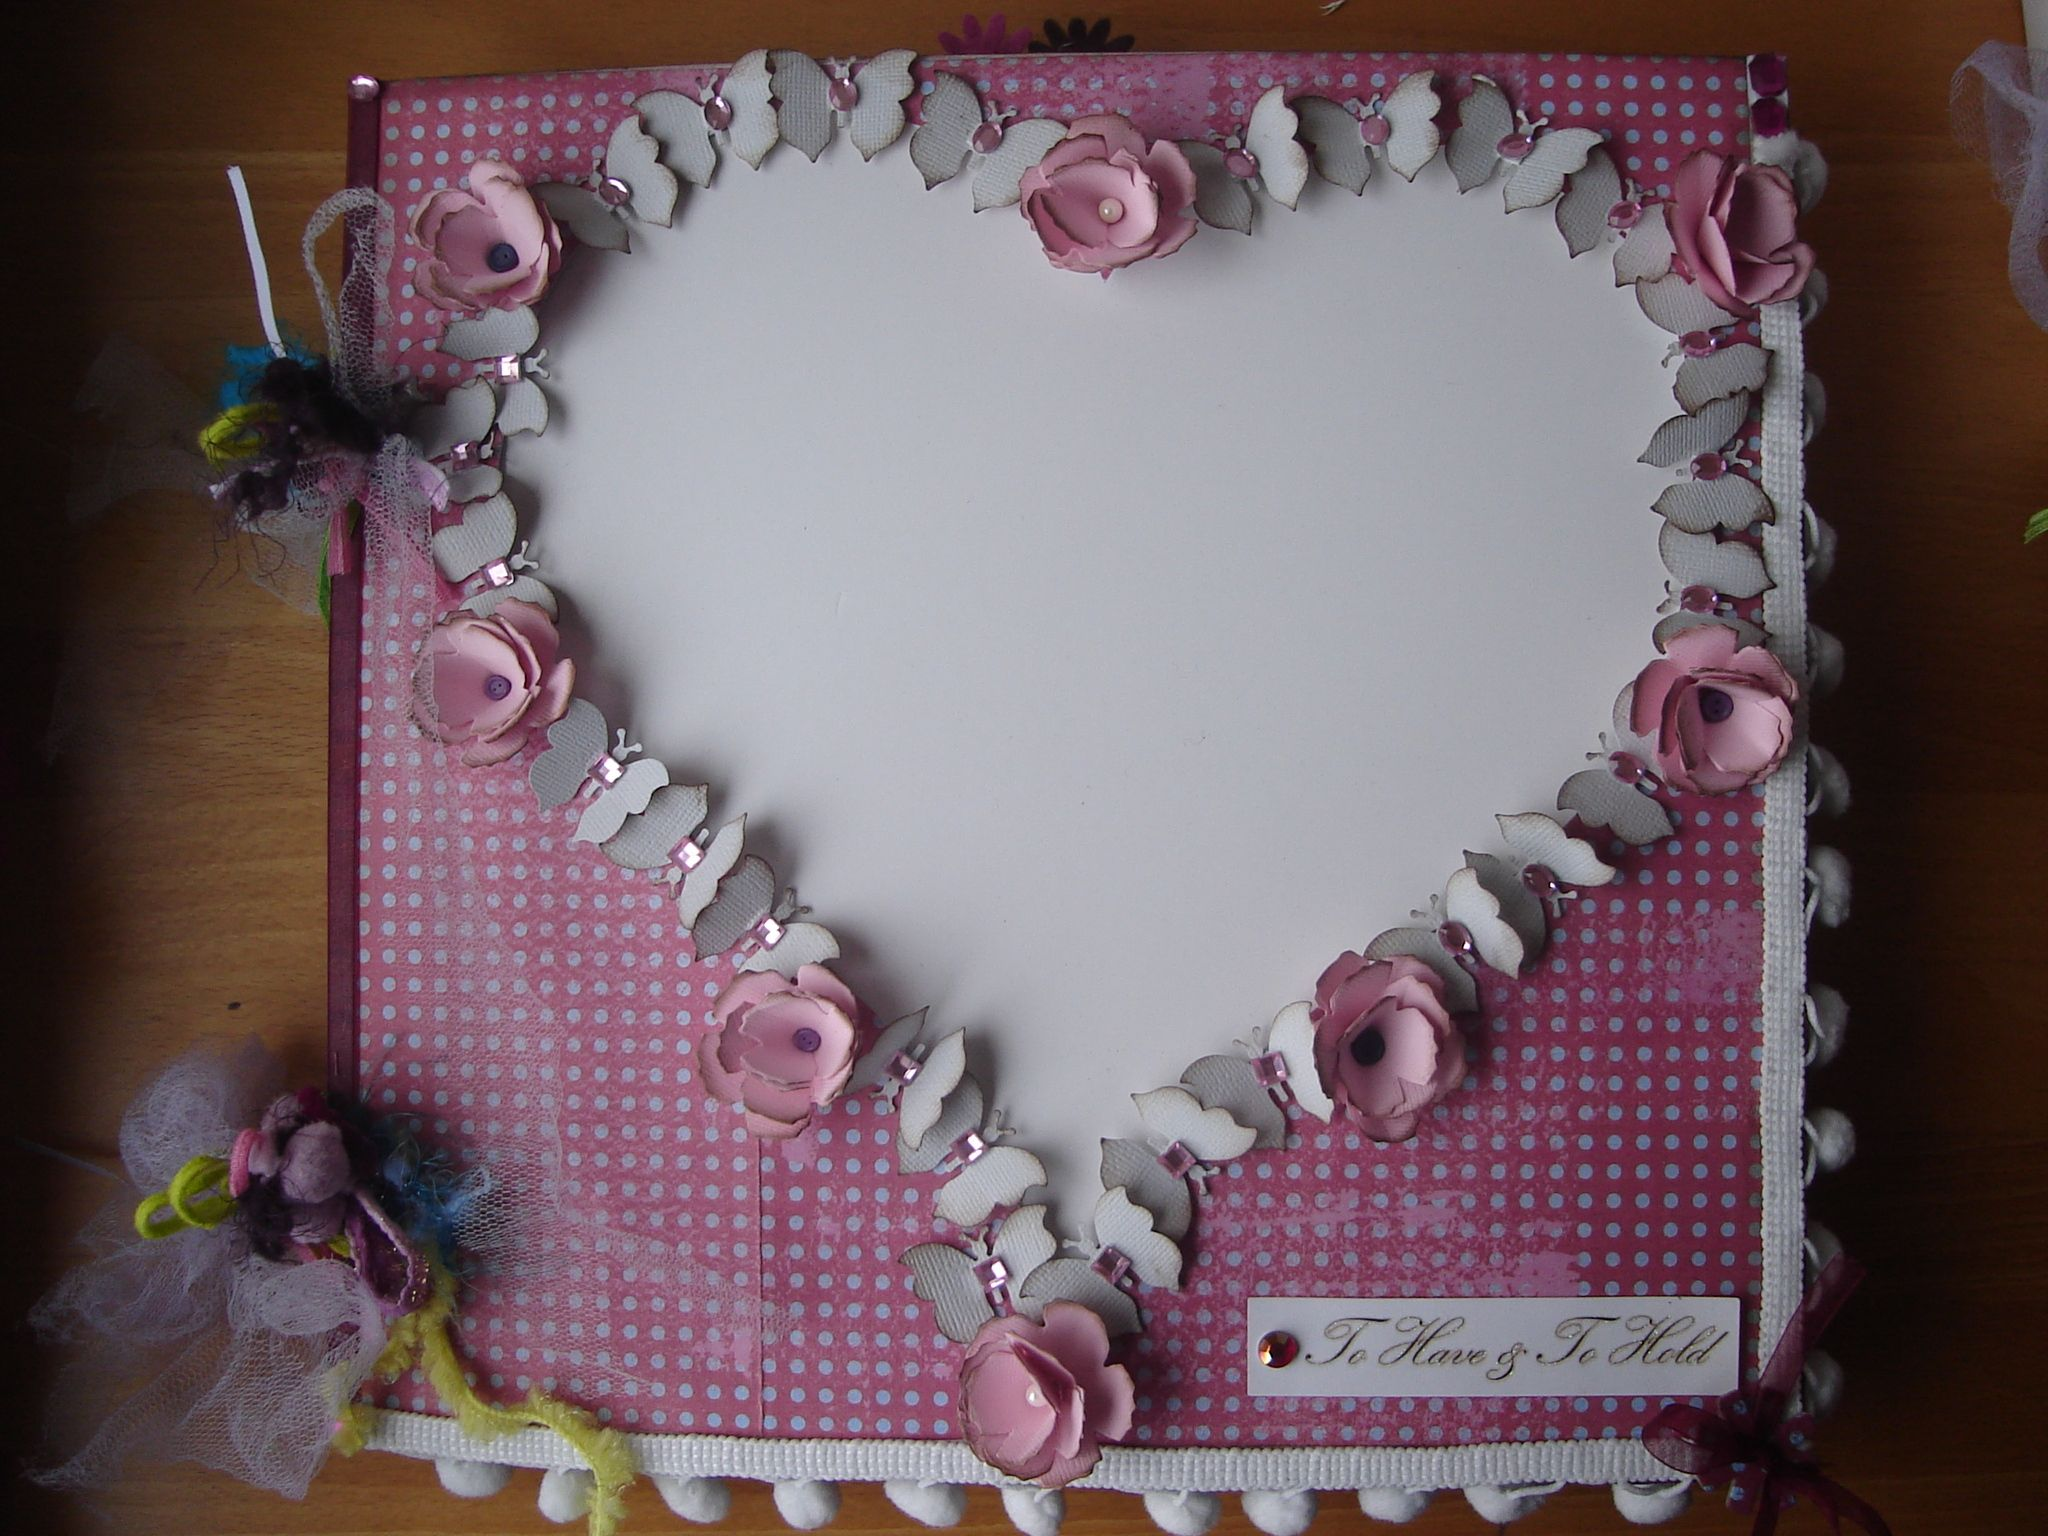 How to make scrapbook album cover - Handmade Album Cover With Space For A Heart Shaped Photo 30 X 30